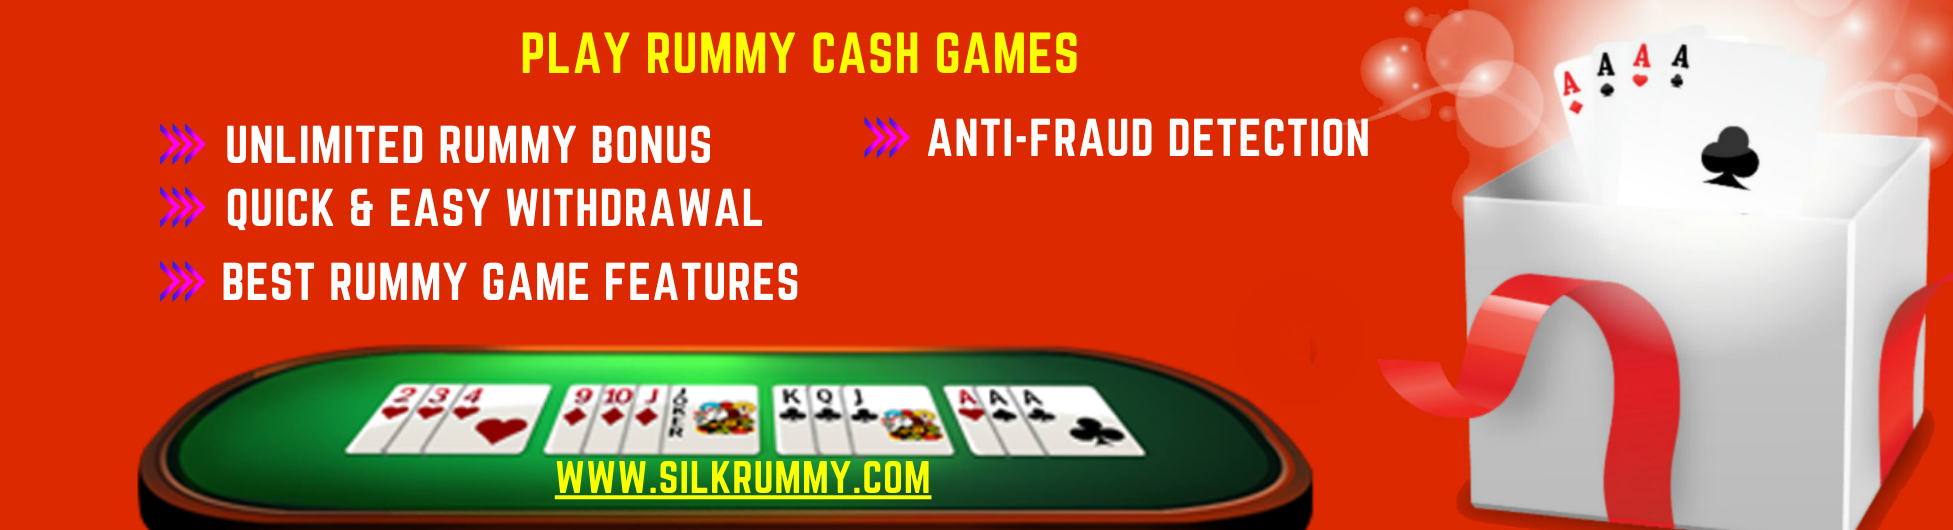 Play Rummy Cash Games - Silkrummy